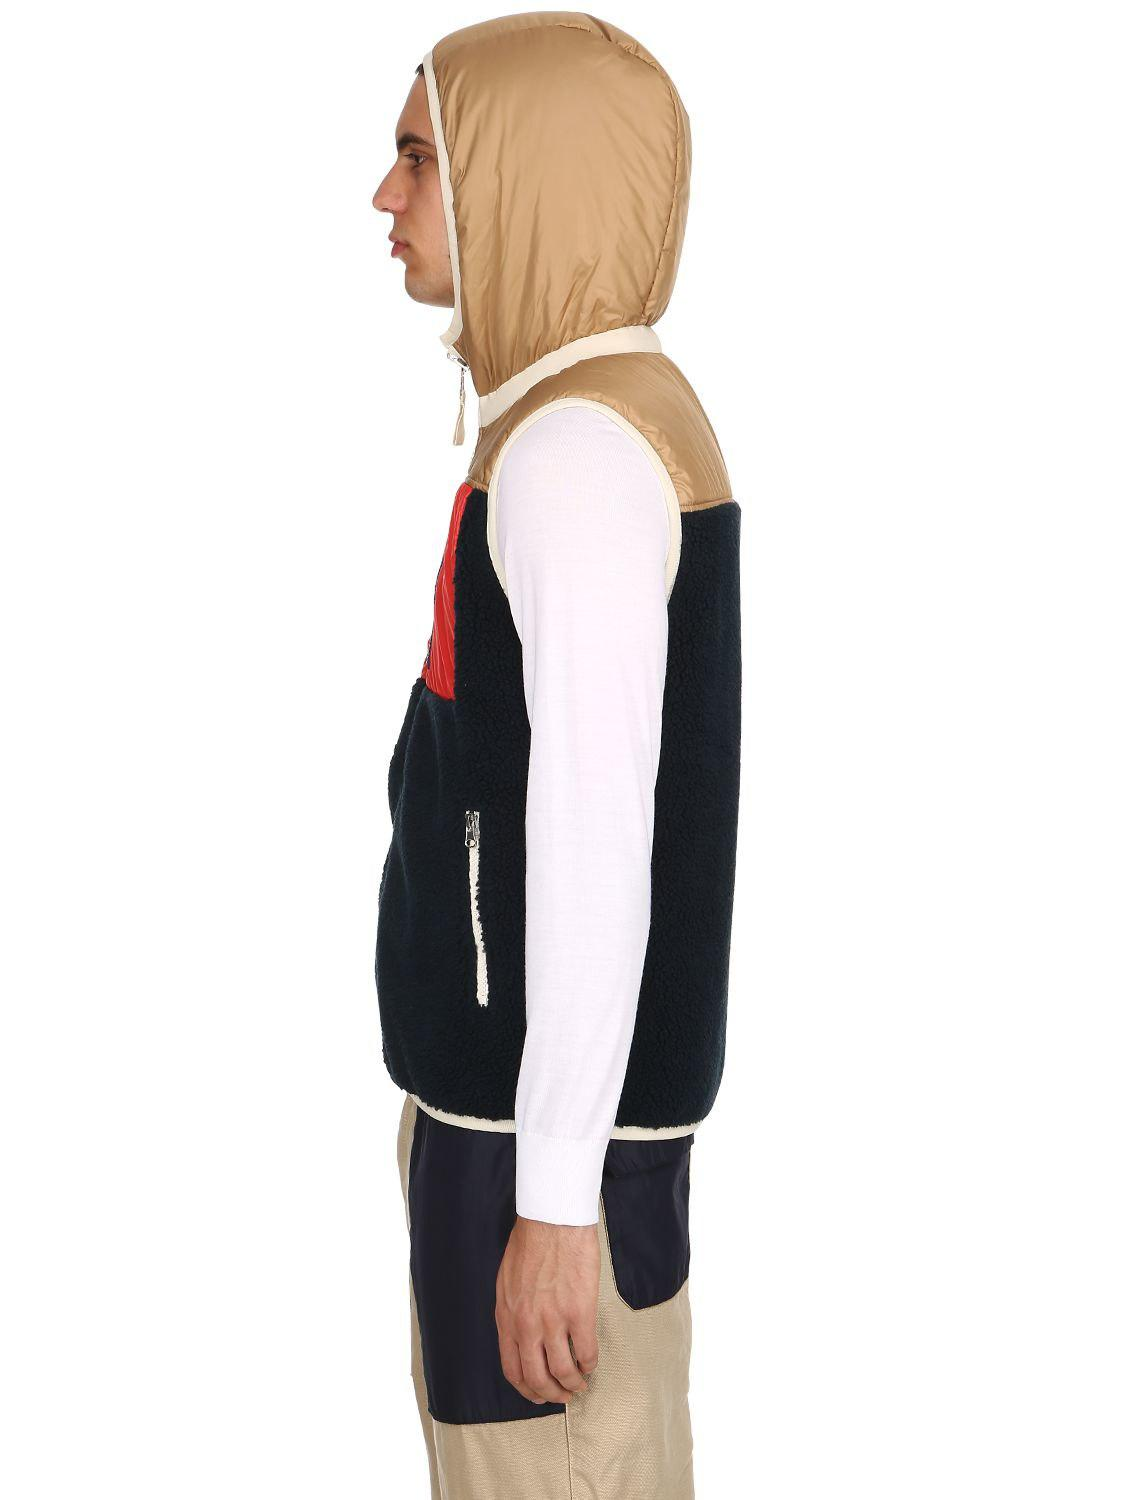 Diadora Lc23 Reversible Patchwork Vest in Navy (Blue) for